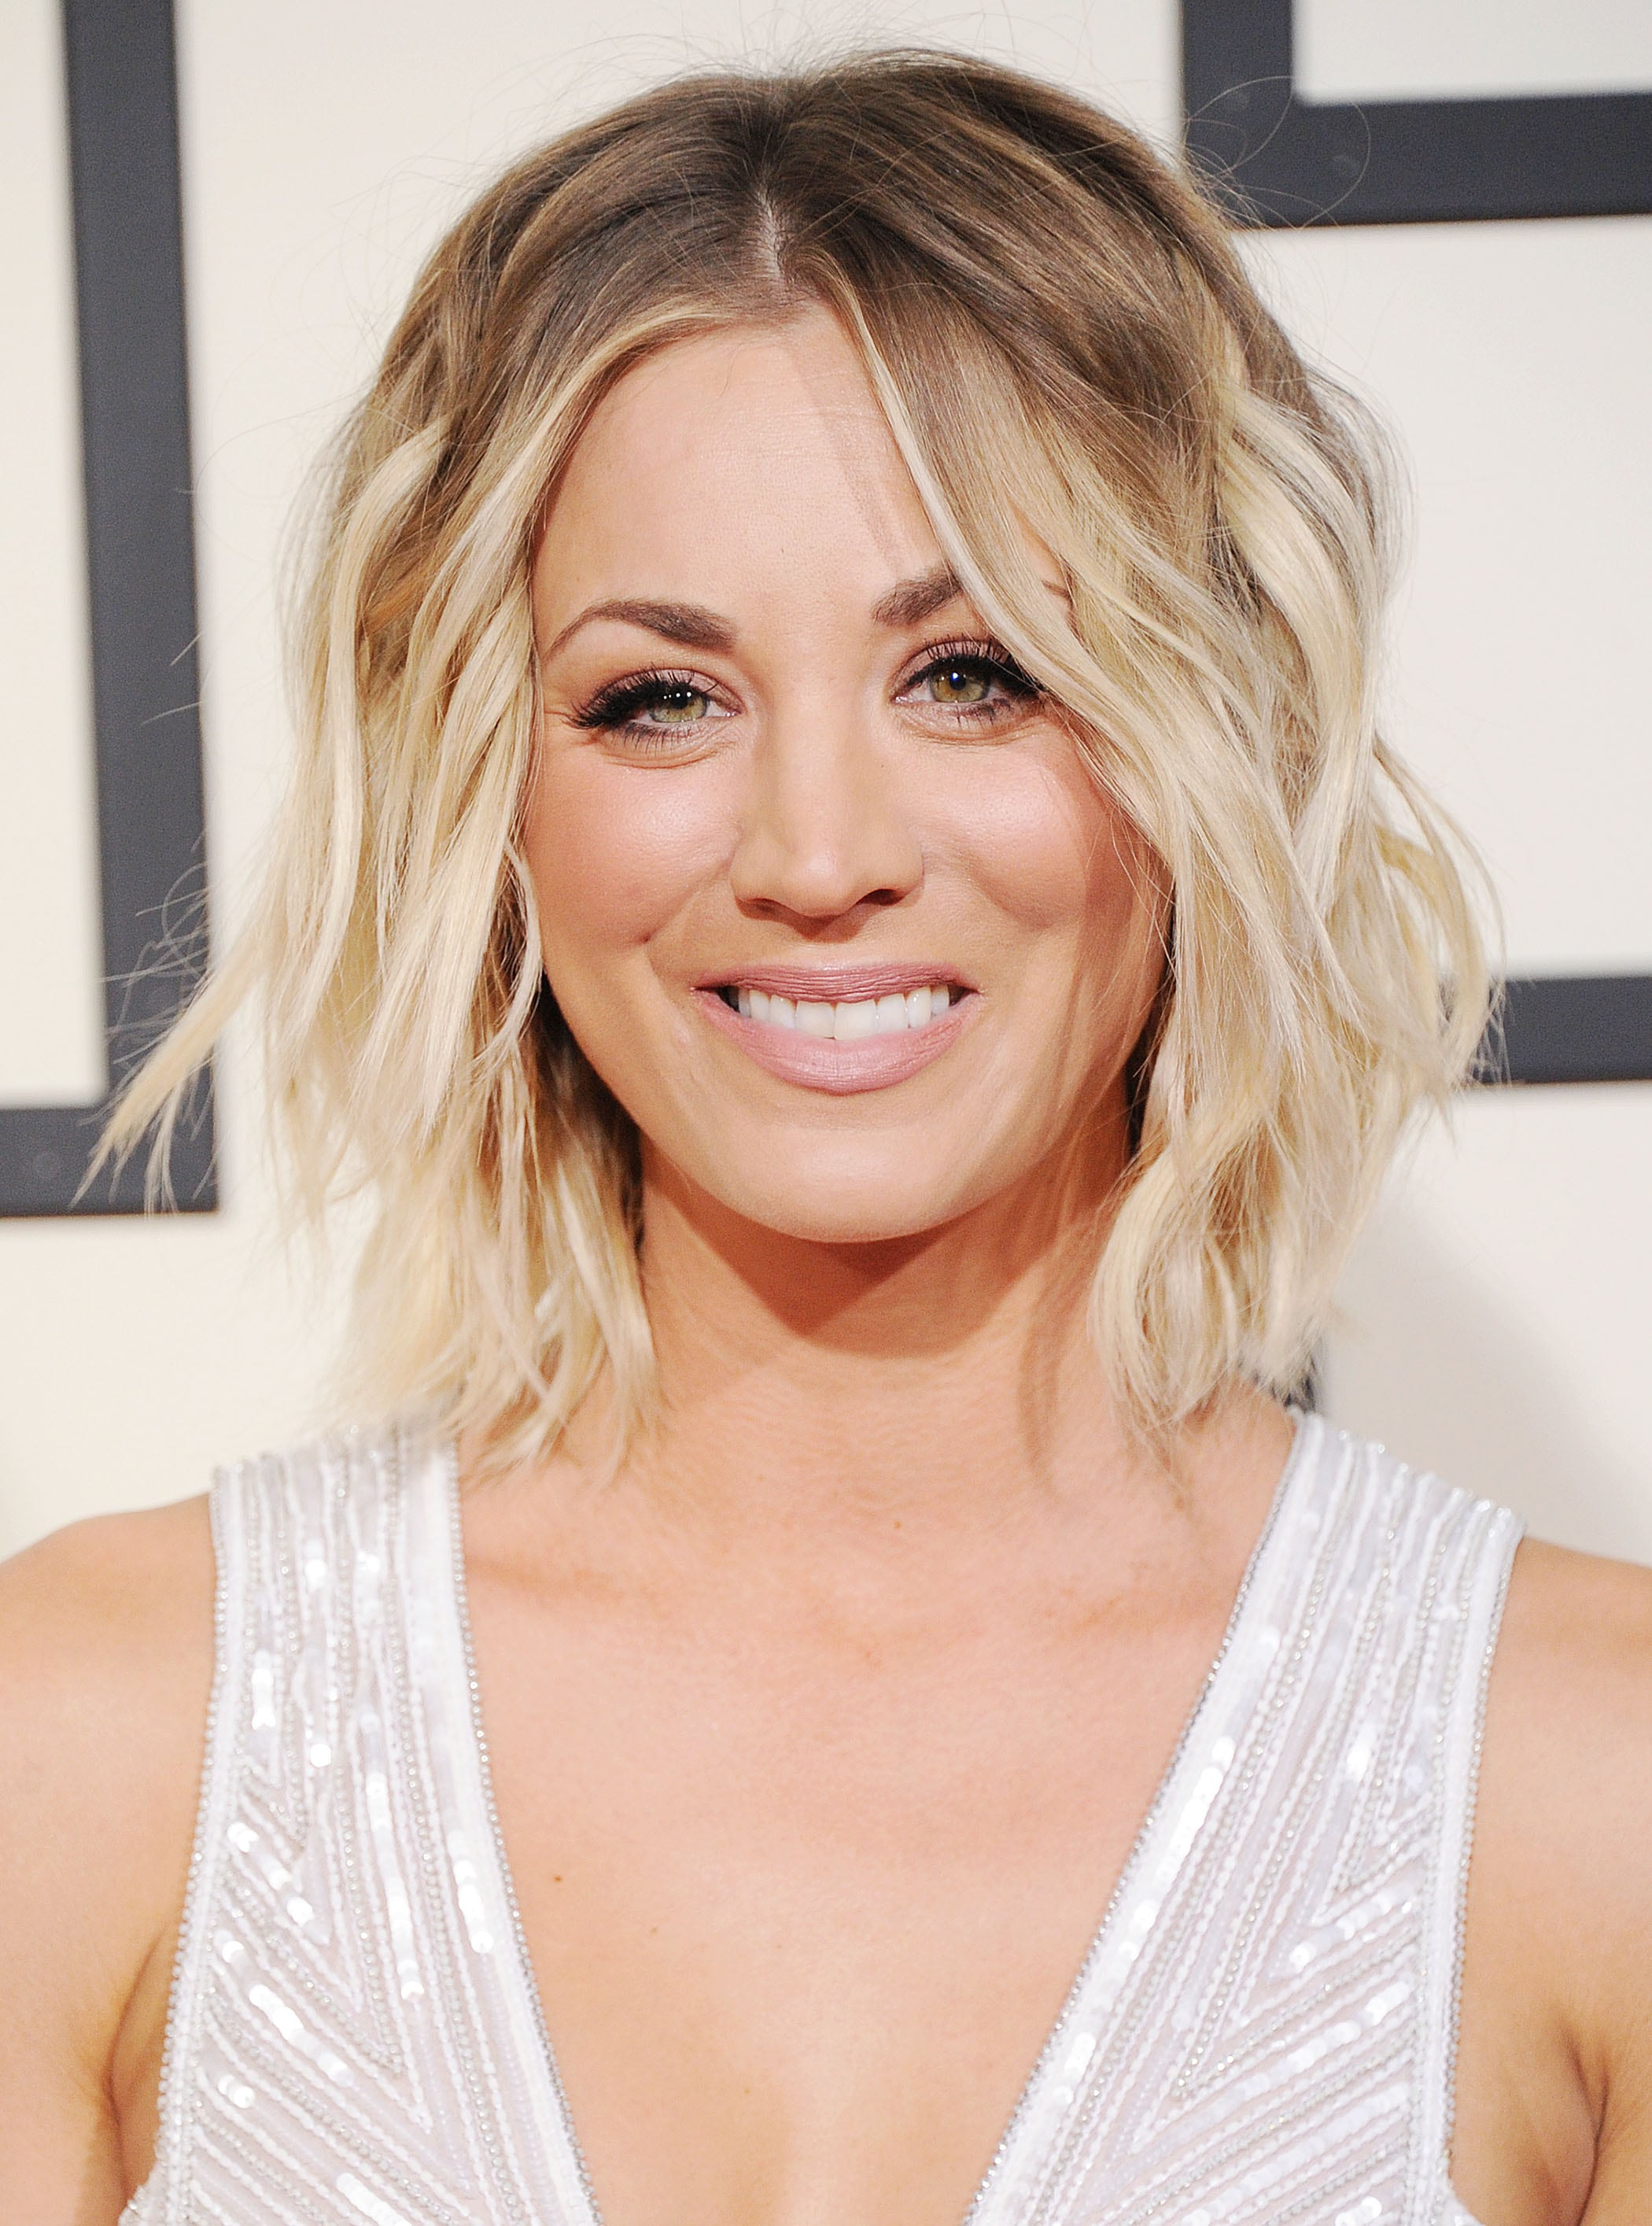 Angled bob: Kaley Cuoco with a wavy brown to blonde ombre angled bob